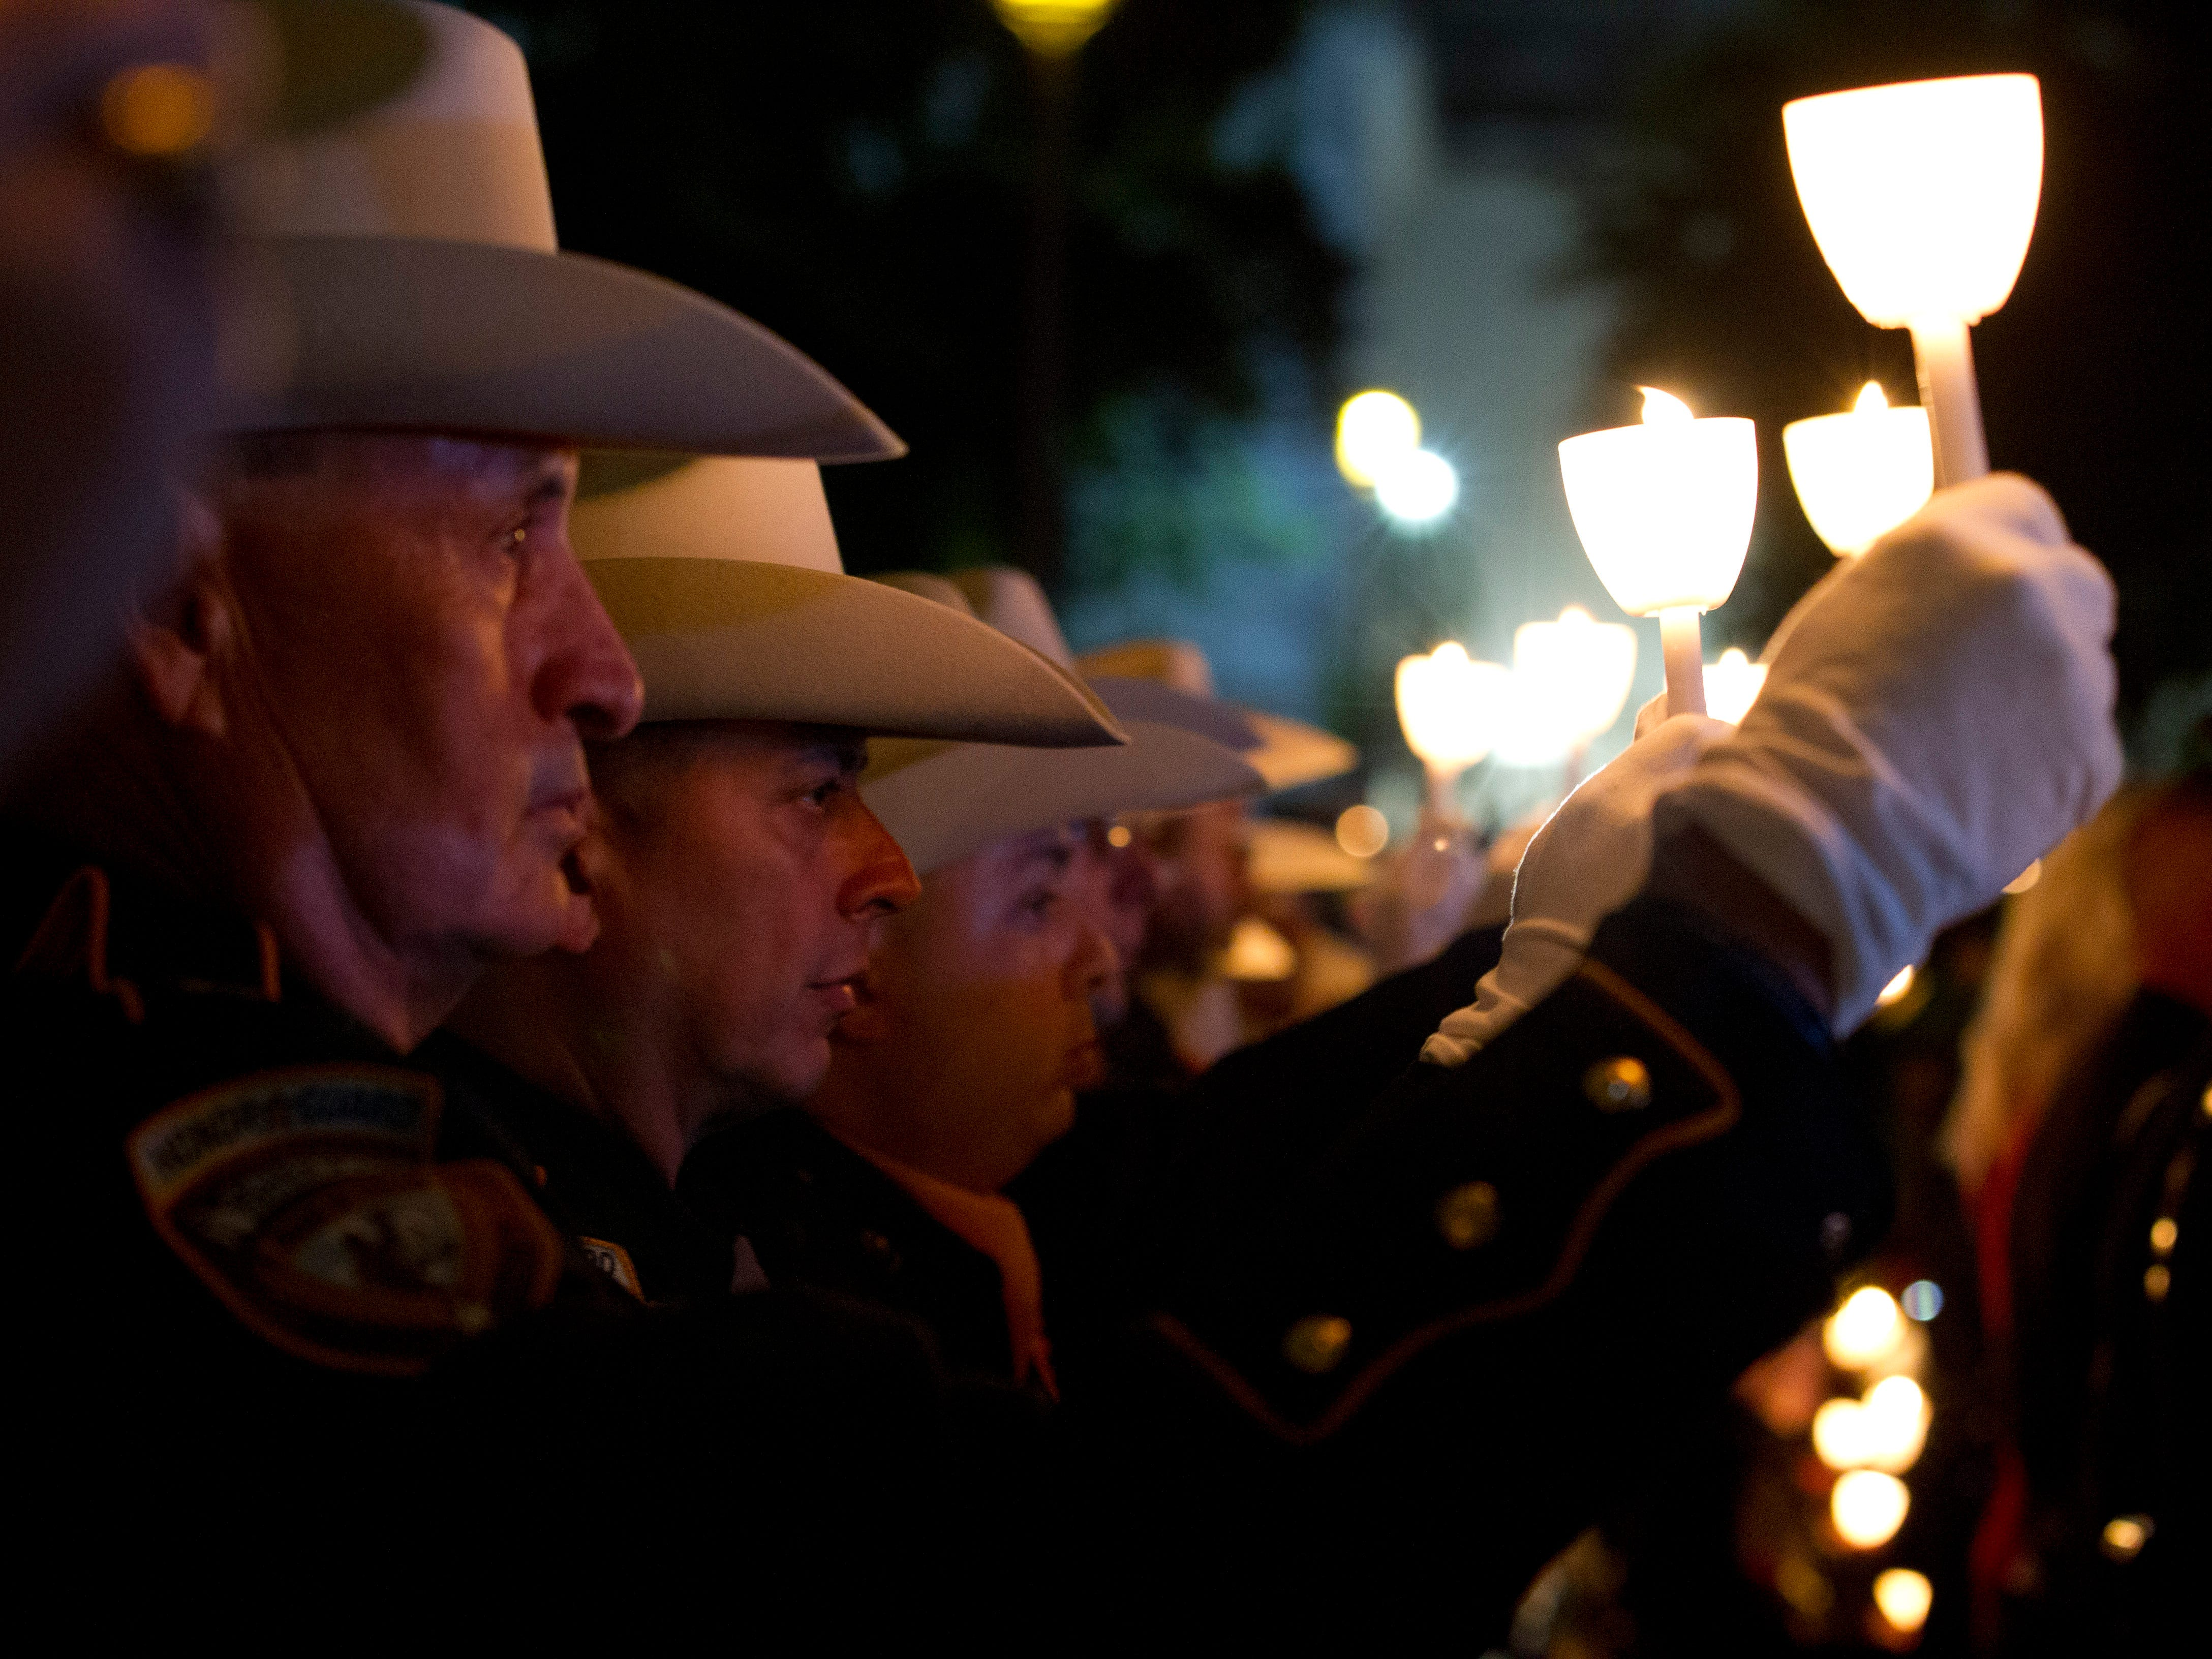 Houston law enforcement personnel raise their candles during the National Law Enforcement Officers Memorial Fund Annual Candlelight Vigil to commemorate new names added to the monument, in a ceremony at the National Mall in Washington, Monday, May 13, 2019.